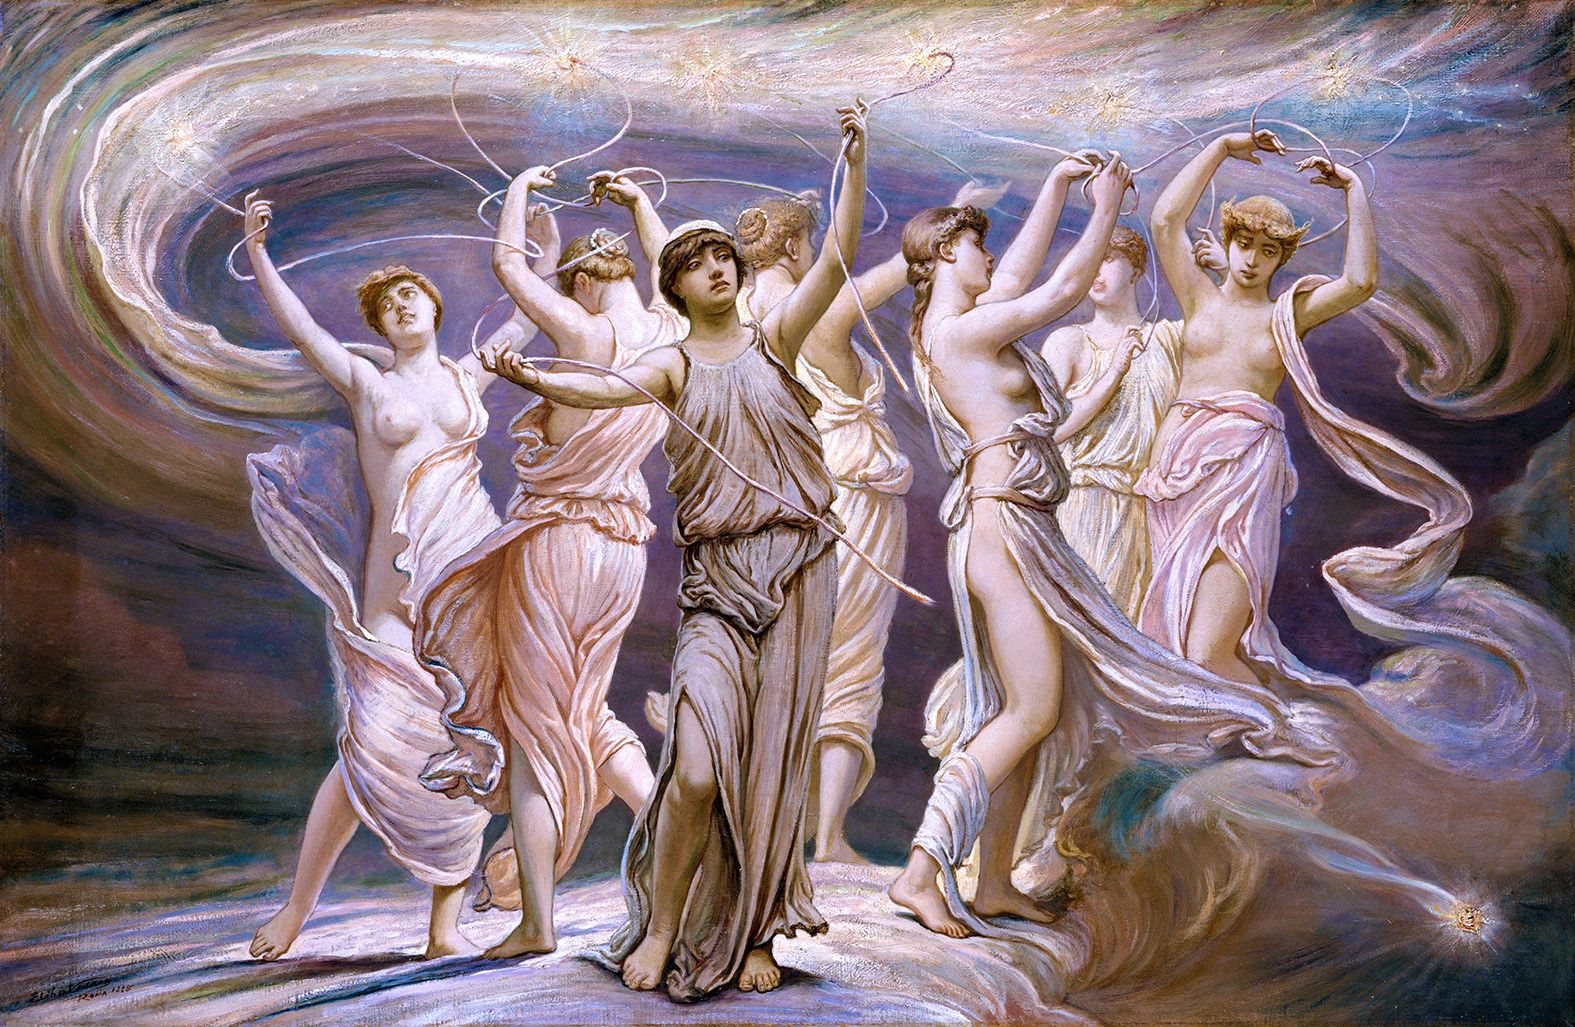 ΄Another Saturday, Another Fairy Tale΄: Pleiades, the 7 daughters of Atlas, and halcyon days - Part 2